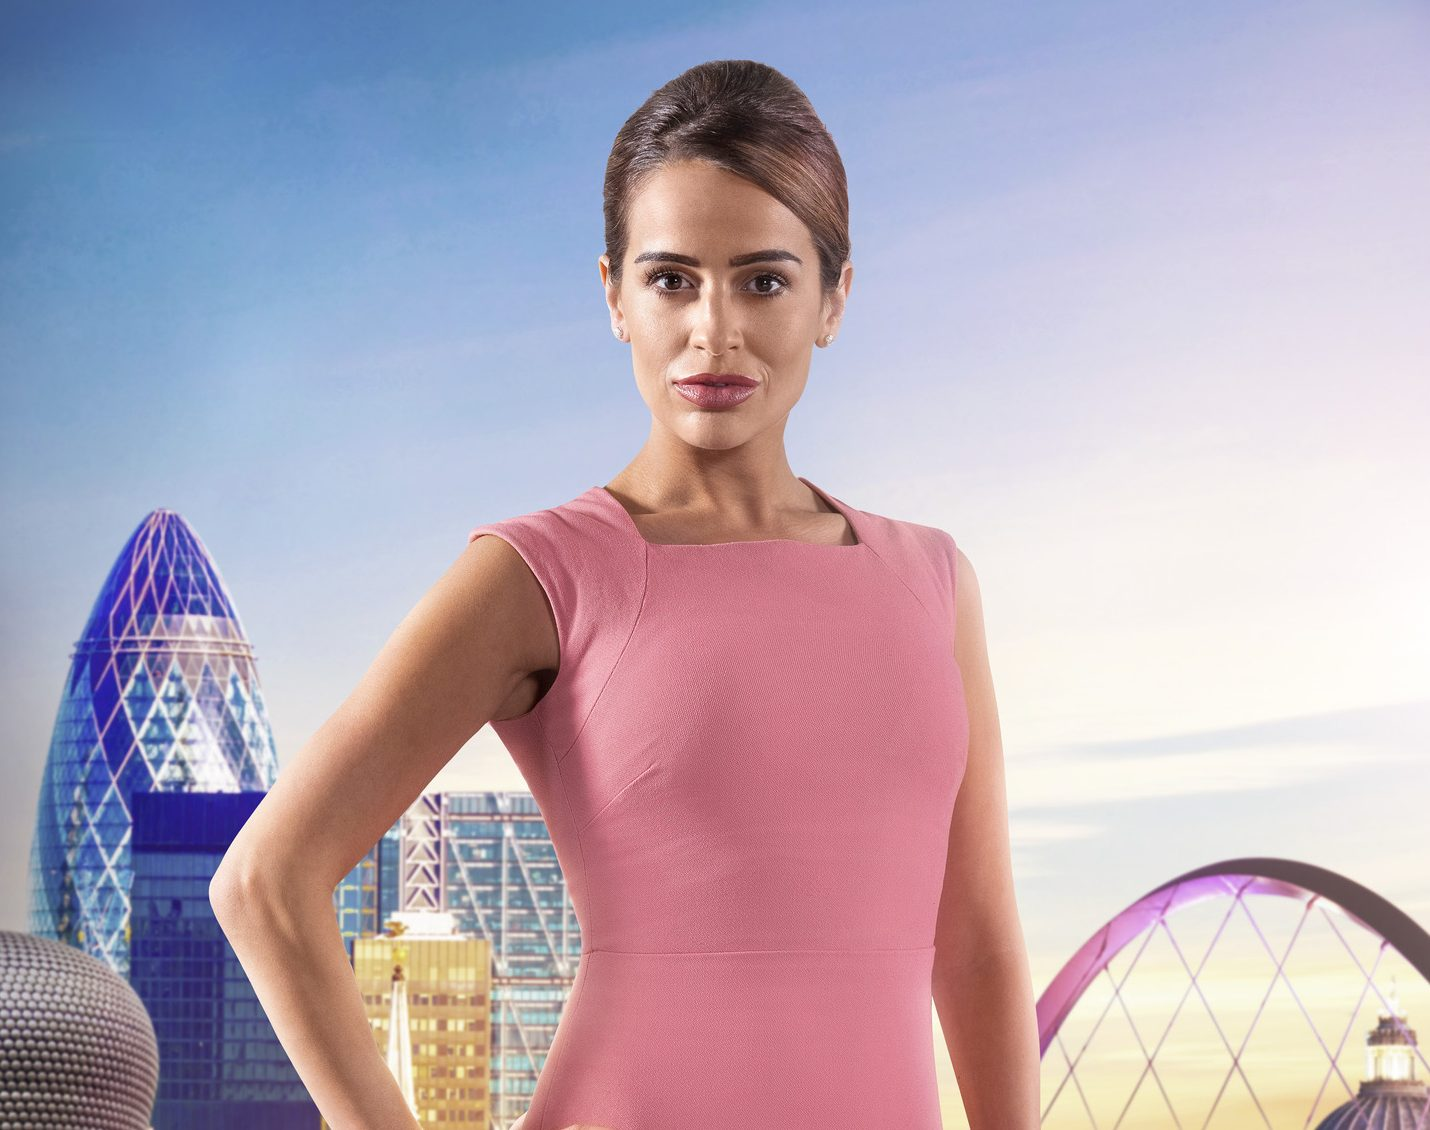 Who did The Apprentice's Sarah Byrne play in Shameless?